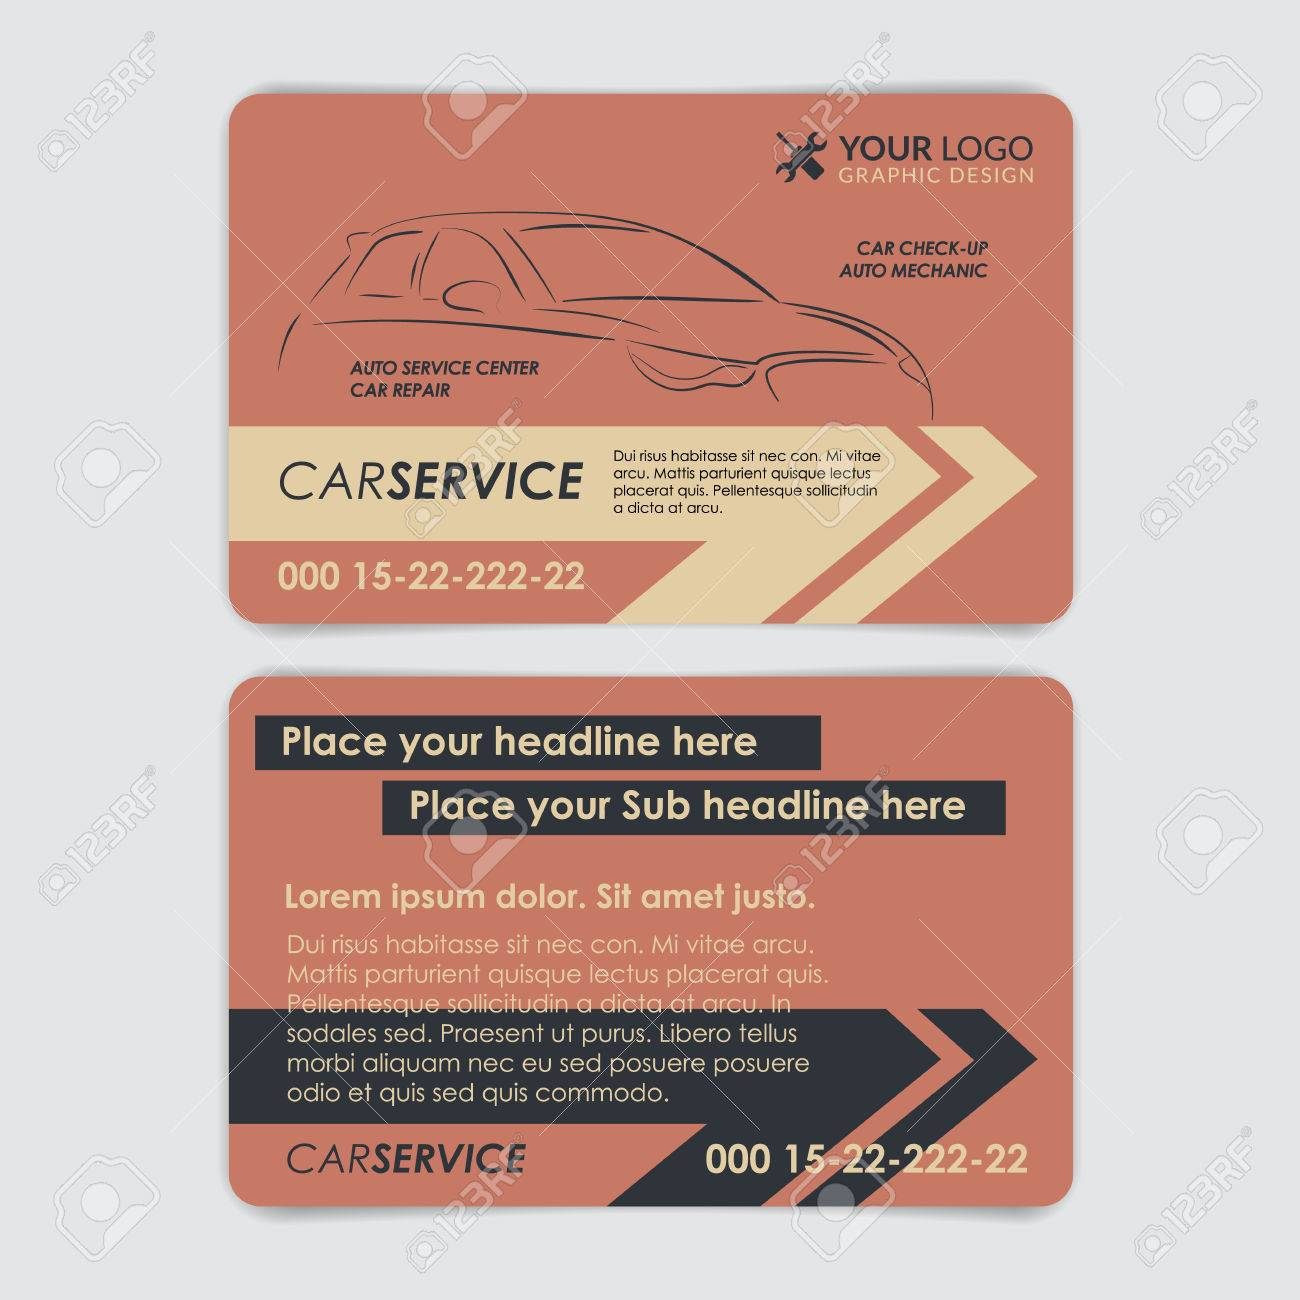 Service car business card template create your own business service car business card template create your own business cards vector illustration stock reheart Choice Image